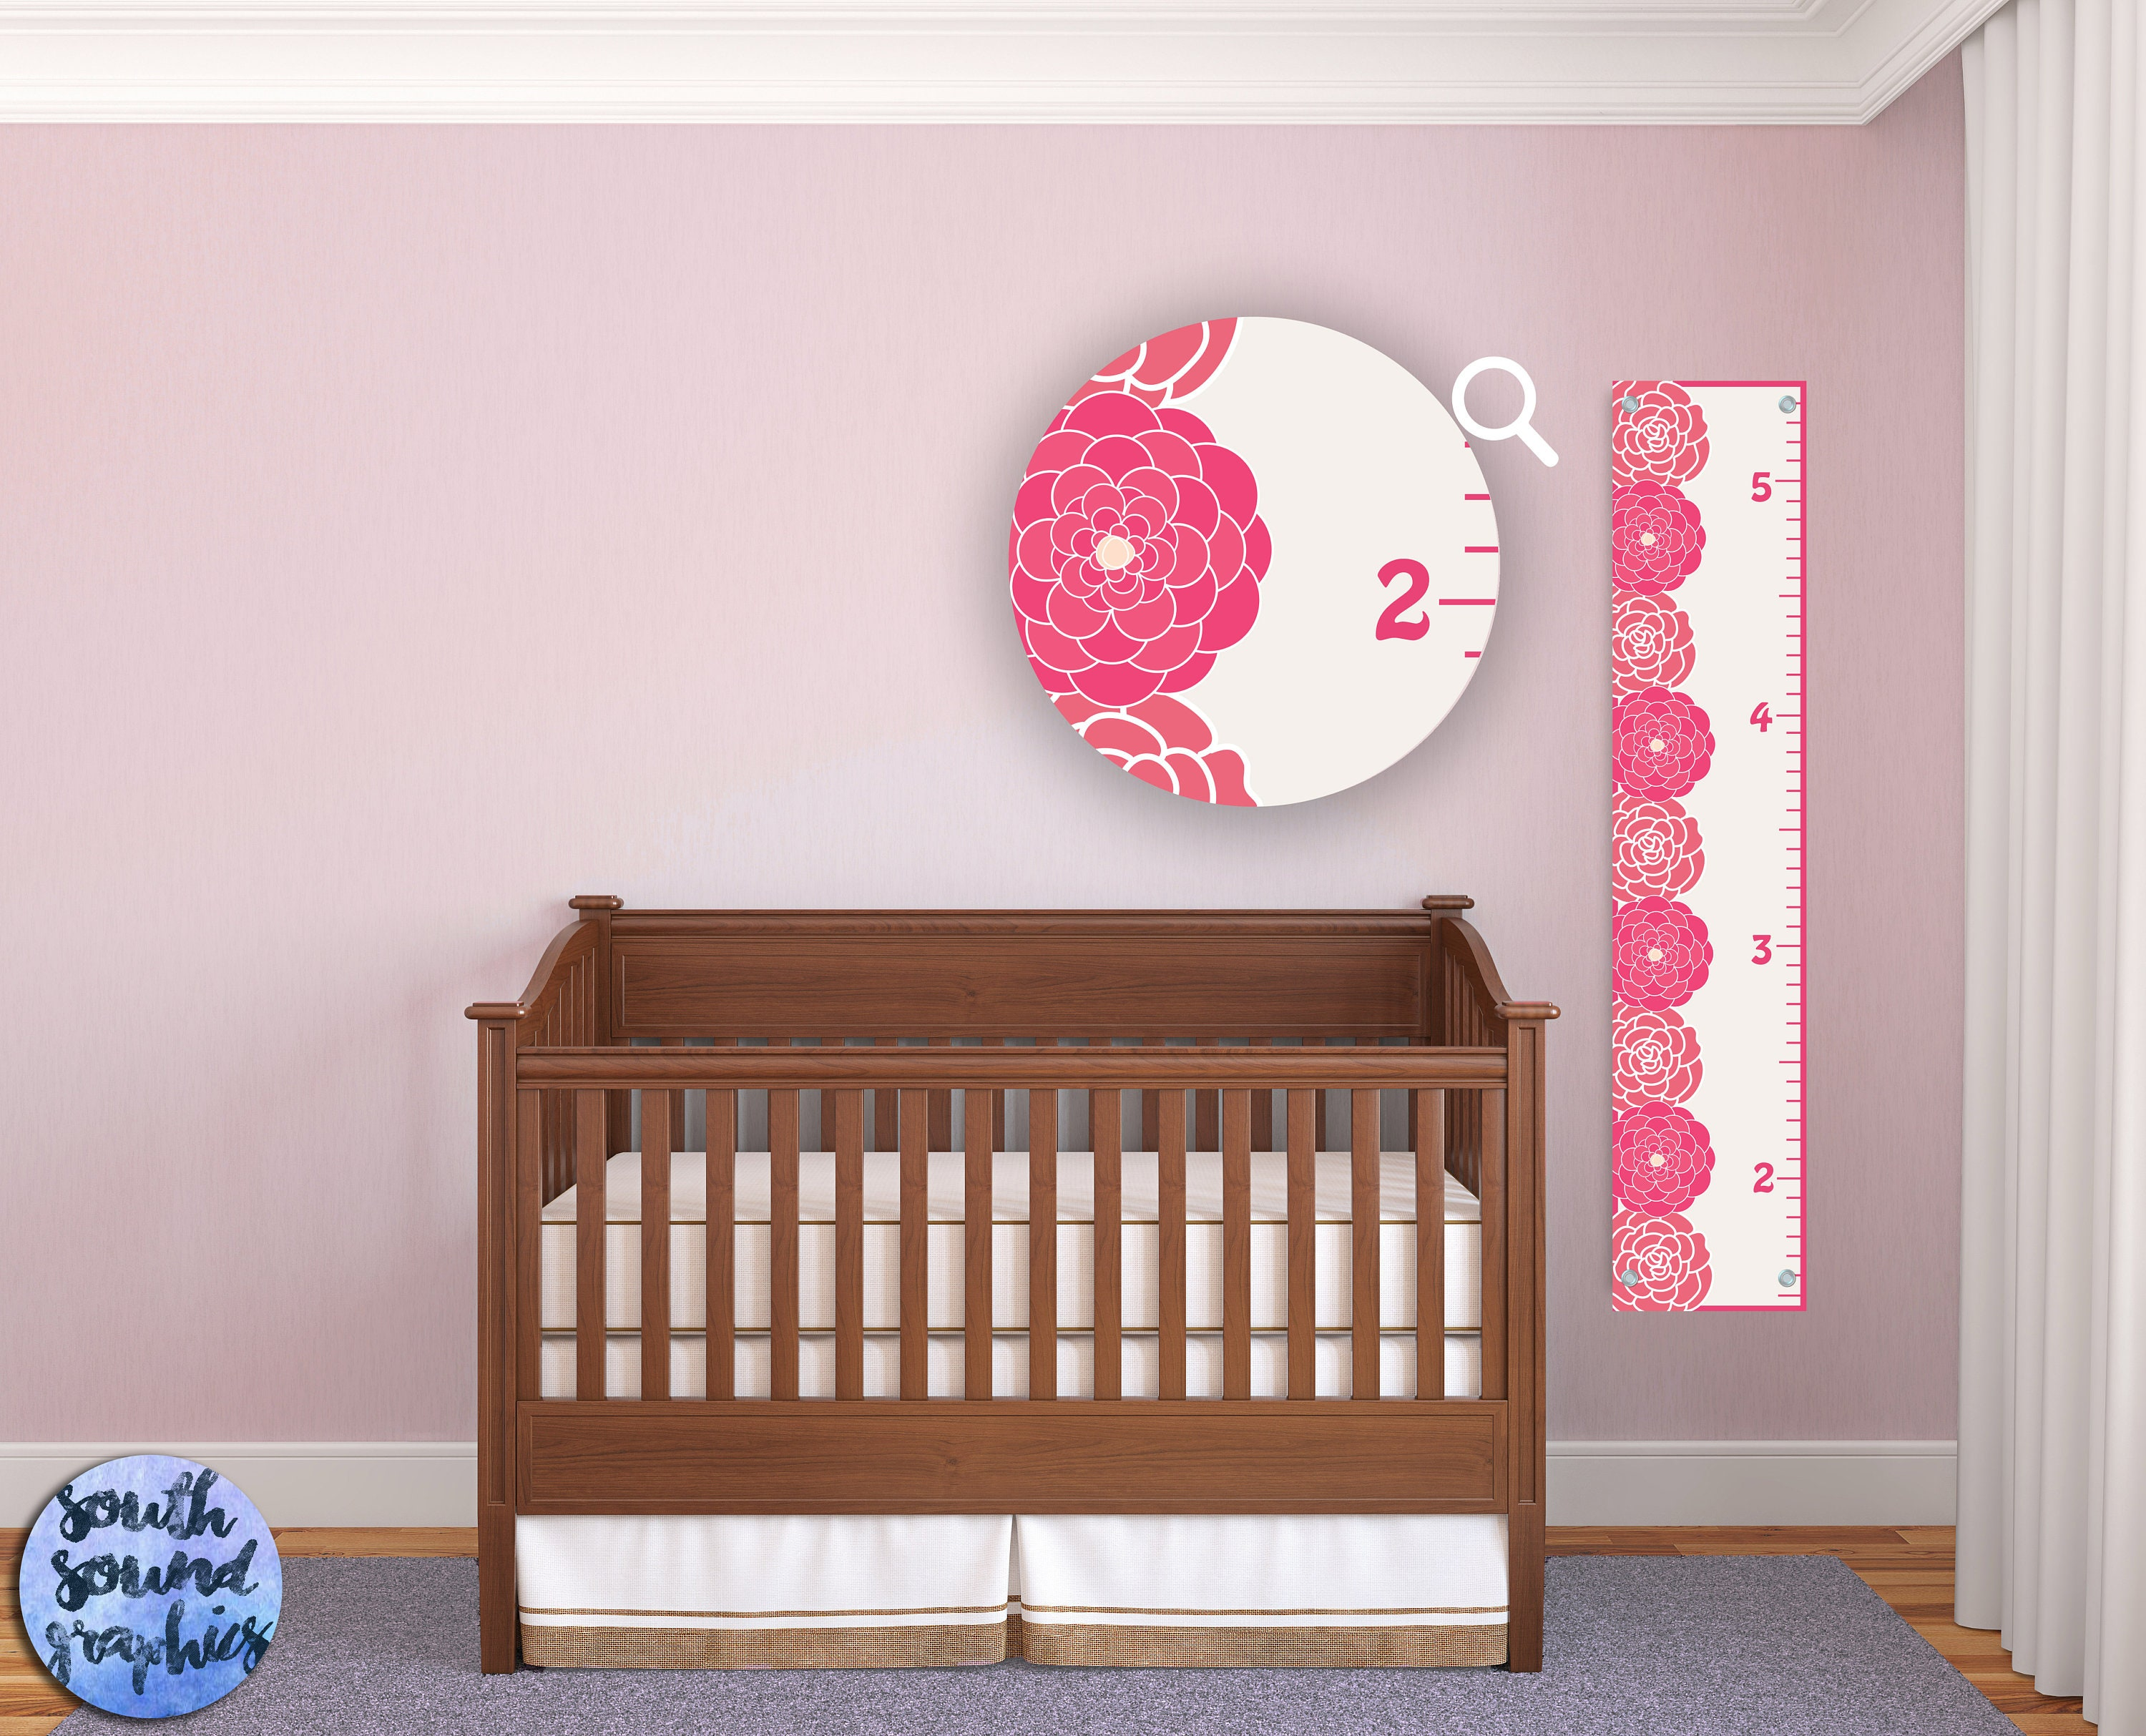 Growth chart for girls kids room wall decor pink floral for Growth chart for kids room